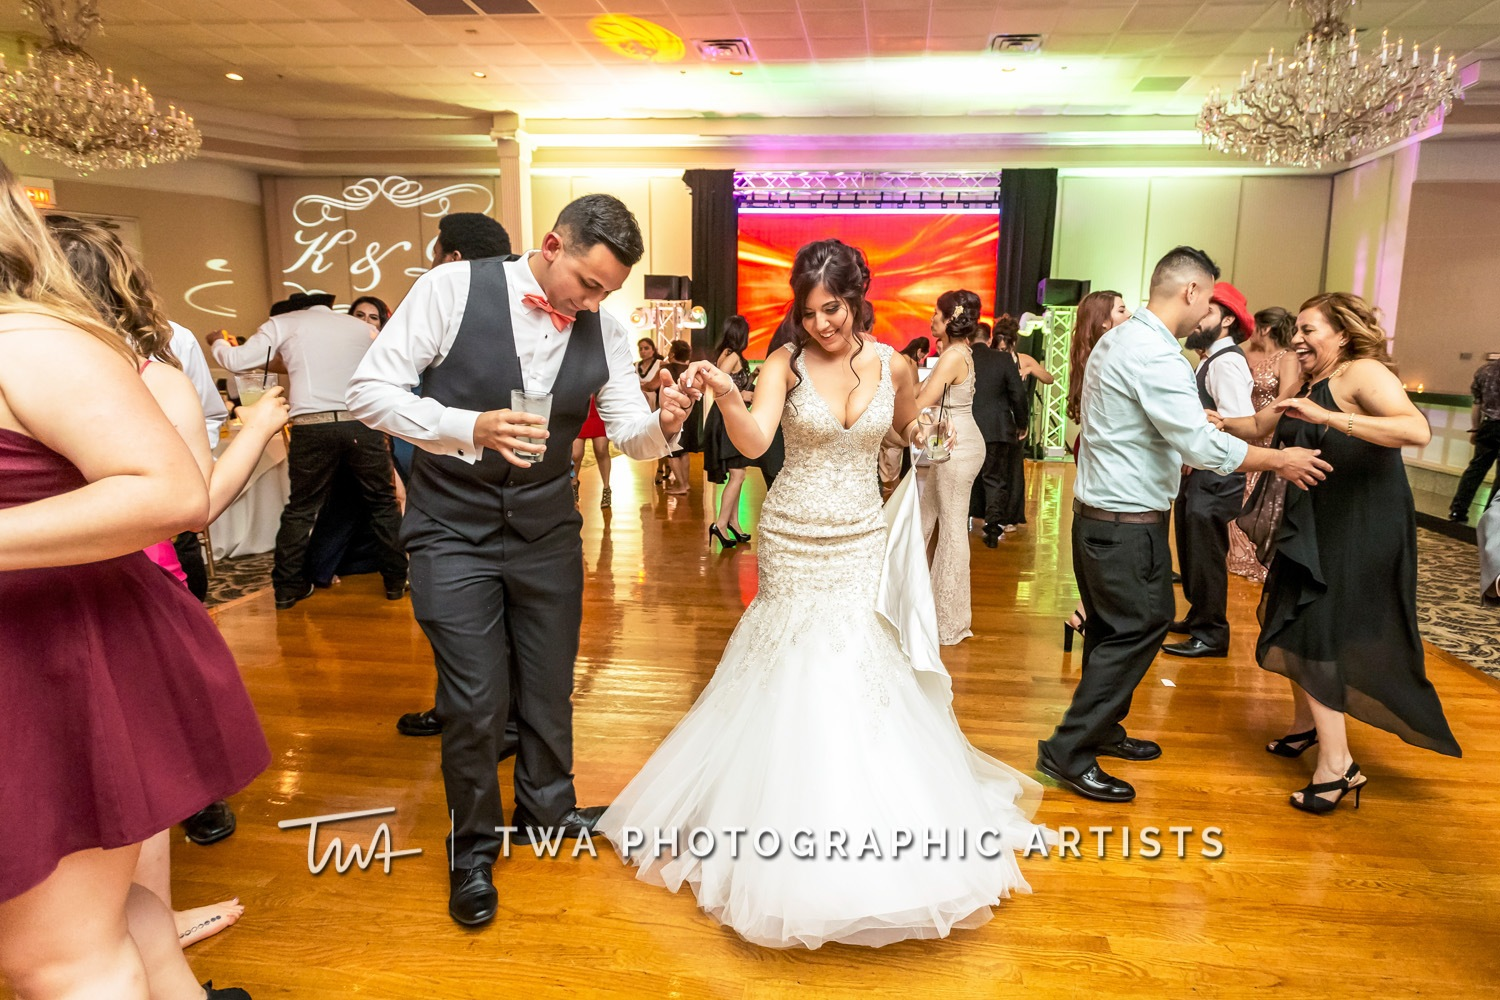 Chicago-Wedding-Photographer-TWA-Photographic-Artists-Abbington-Banquets_Carrillo_Carbajal_MiC-0980